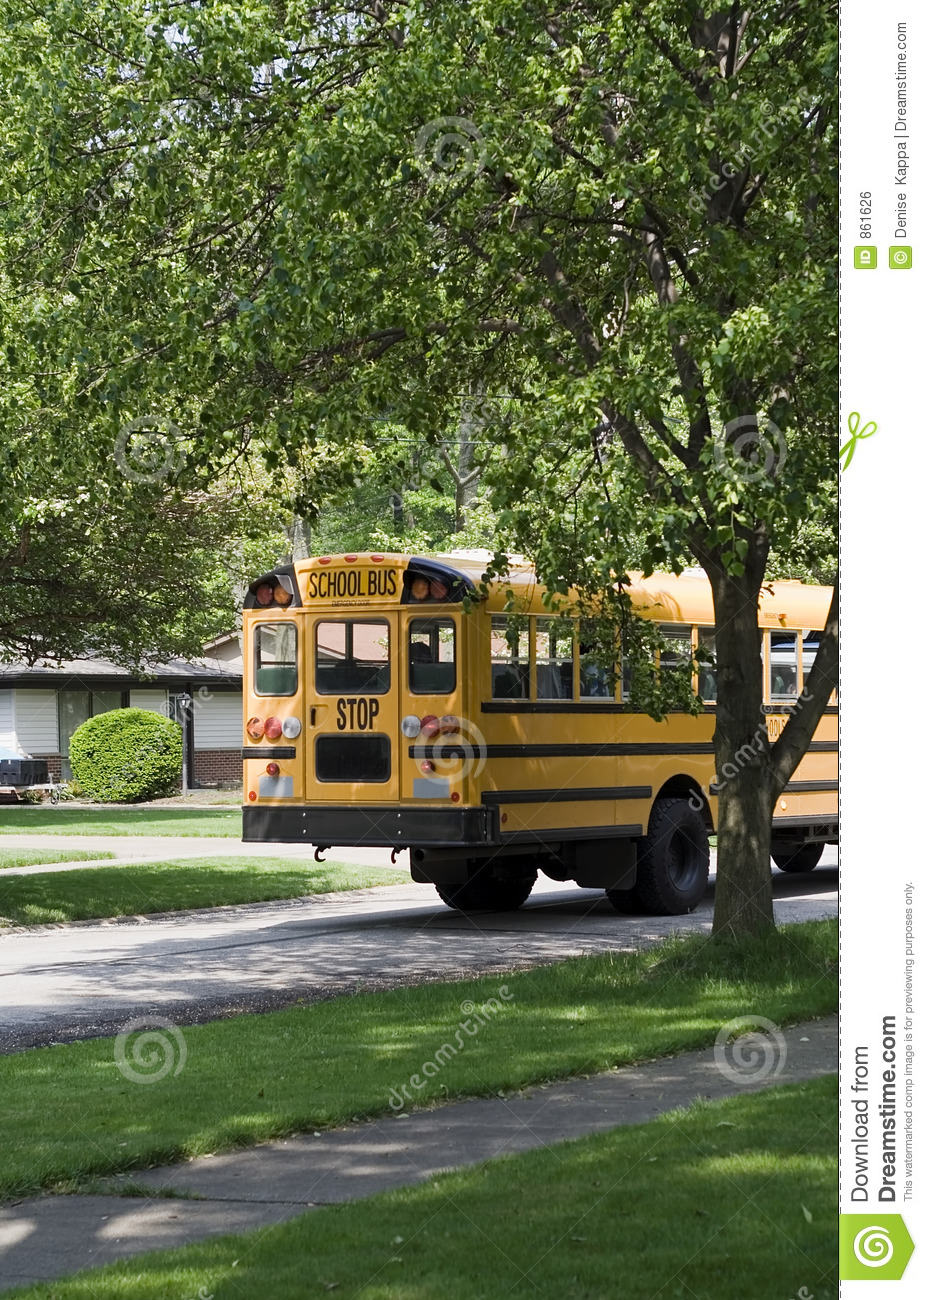 Bus route school